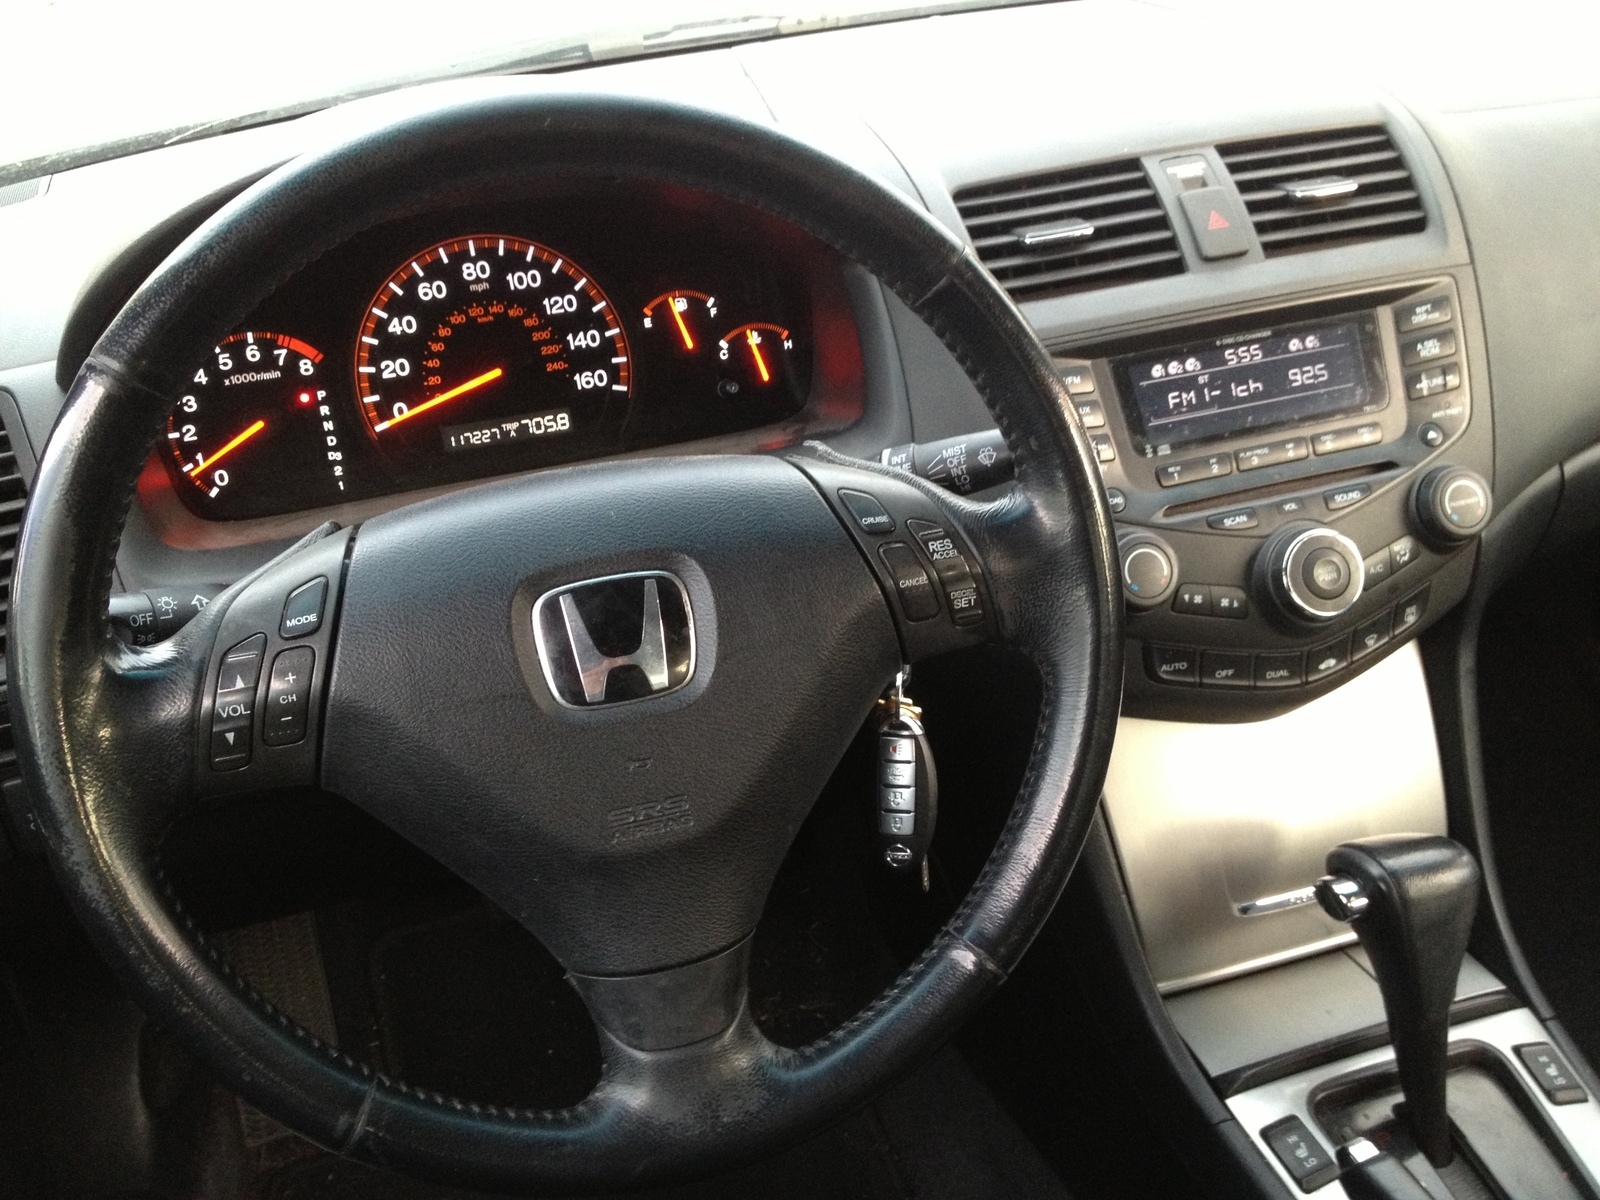 2004 Honda Accord Steering Wheel.JPG (640×480) | Accomplishments |  Pinterest | Honda Accord